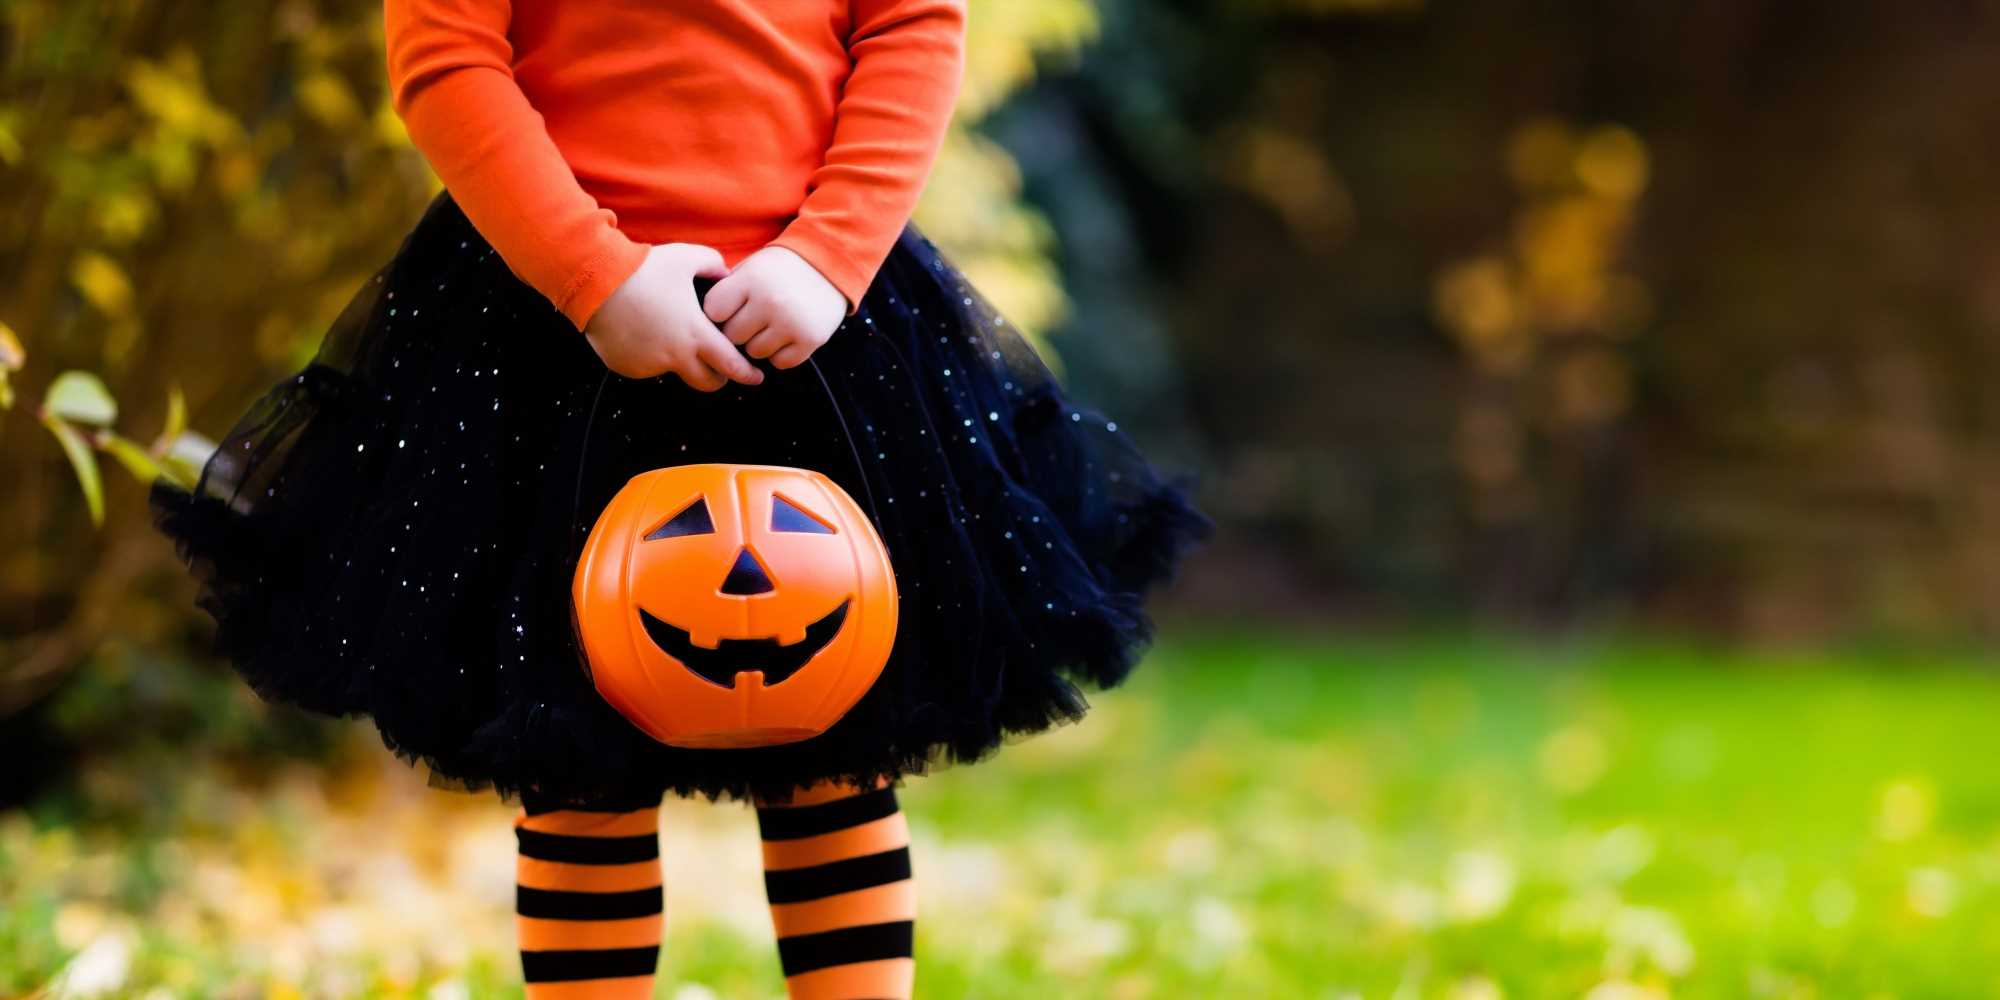 More Than 70,000 People Have Signed A Petition To Move Halloween